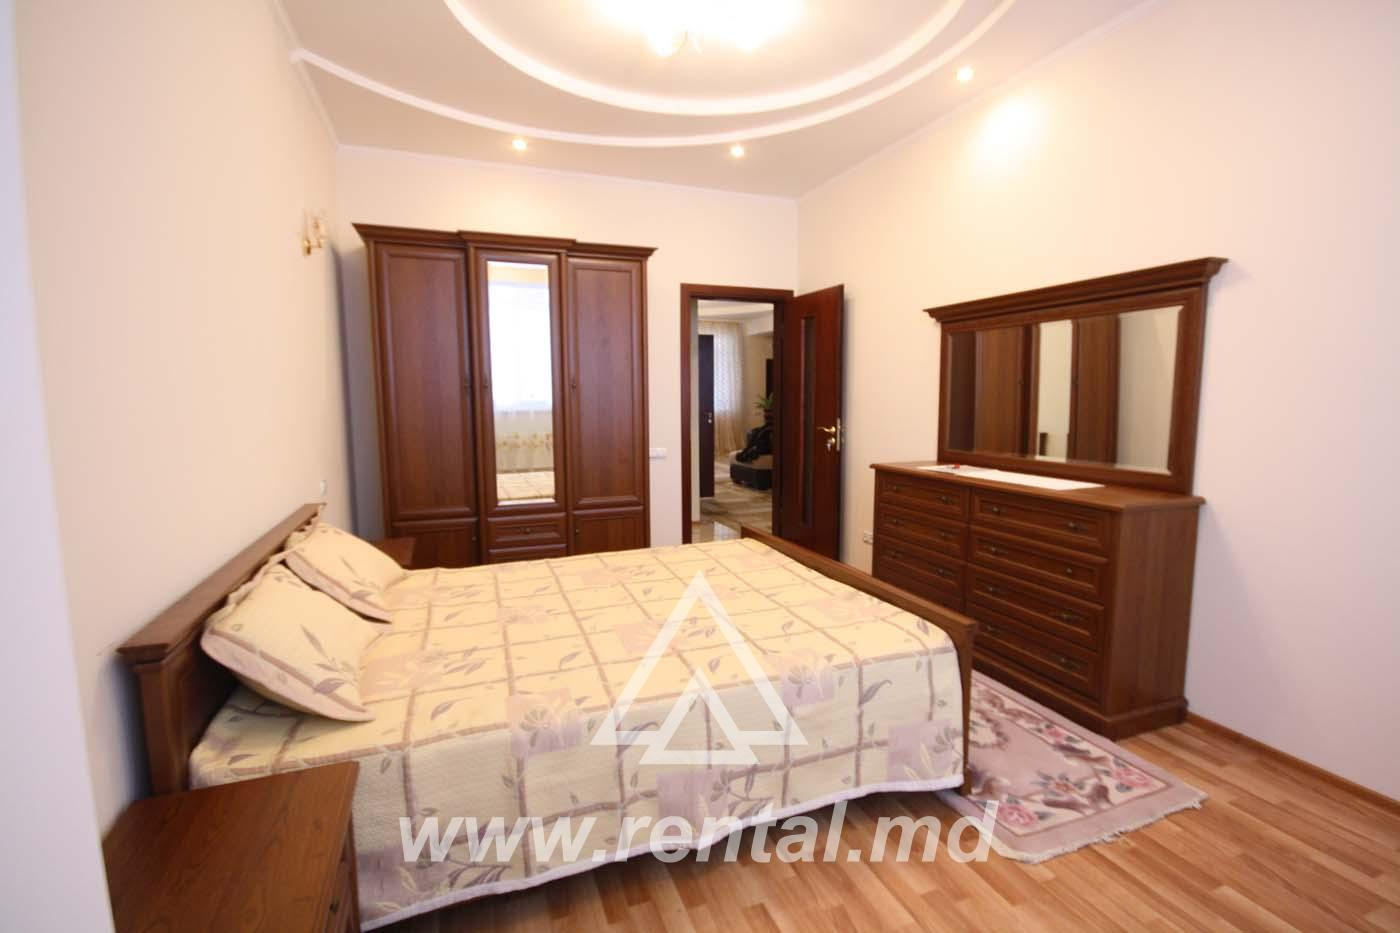 For rent 3-rooms apartment in the Center of Chisinau